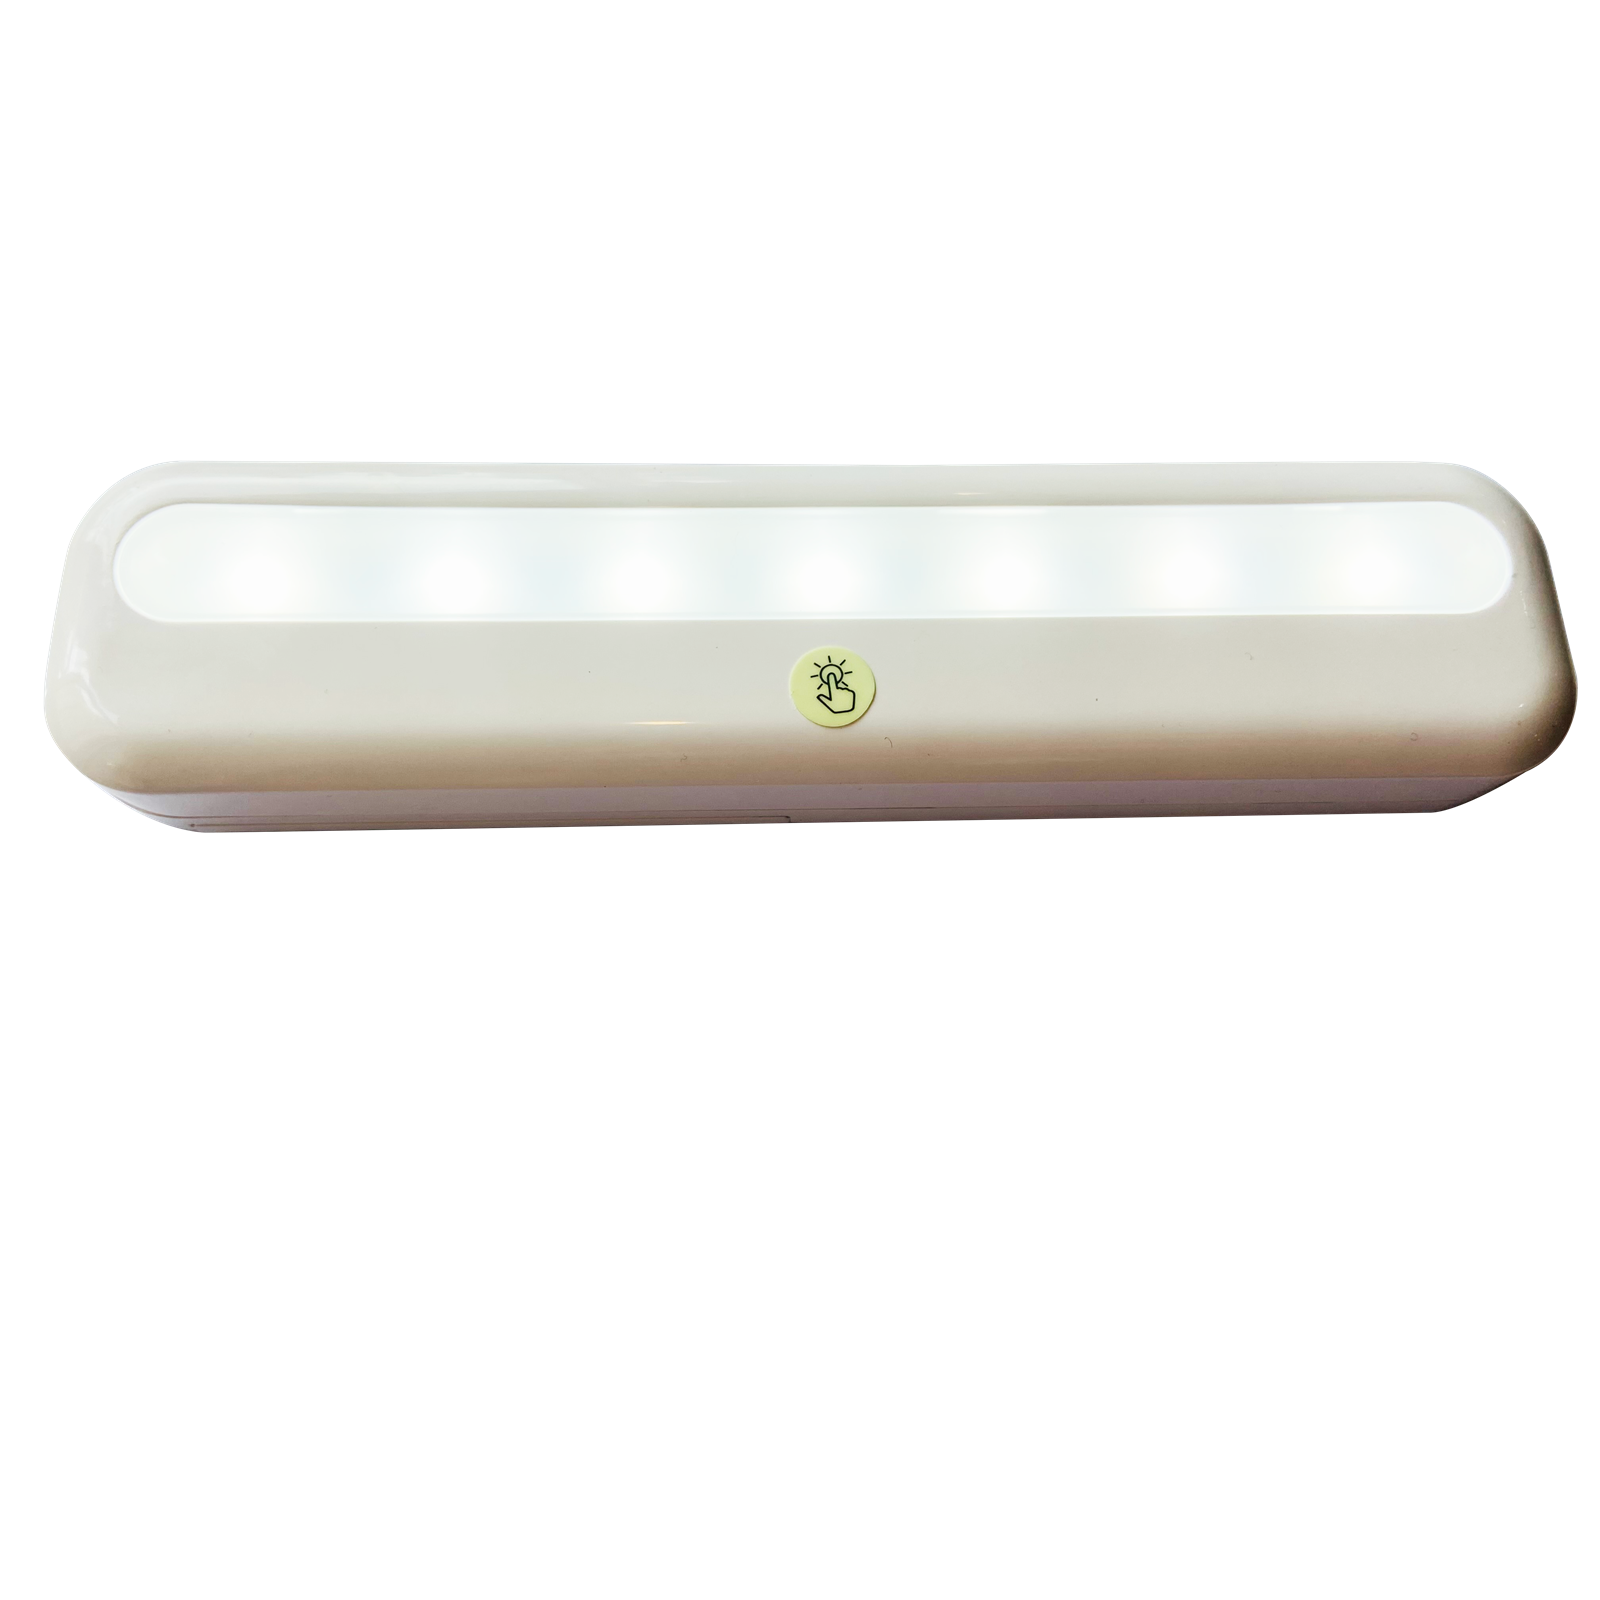 Magic Living Soft Touch Dimmable Nightlight